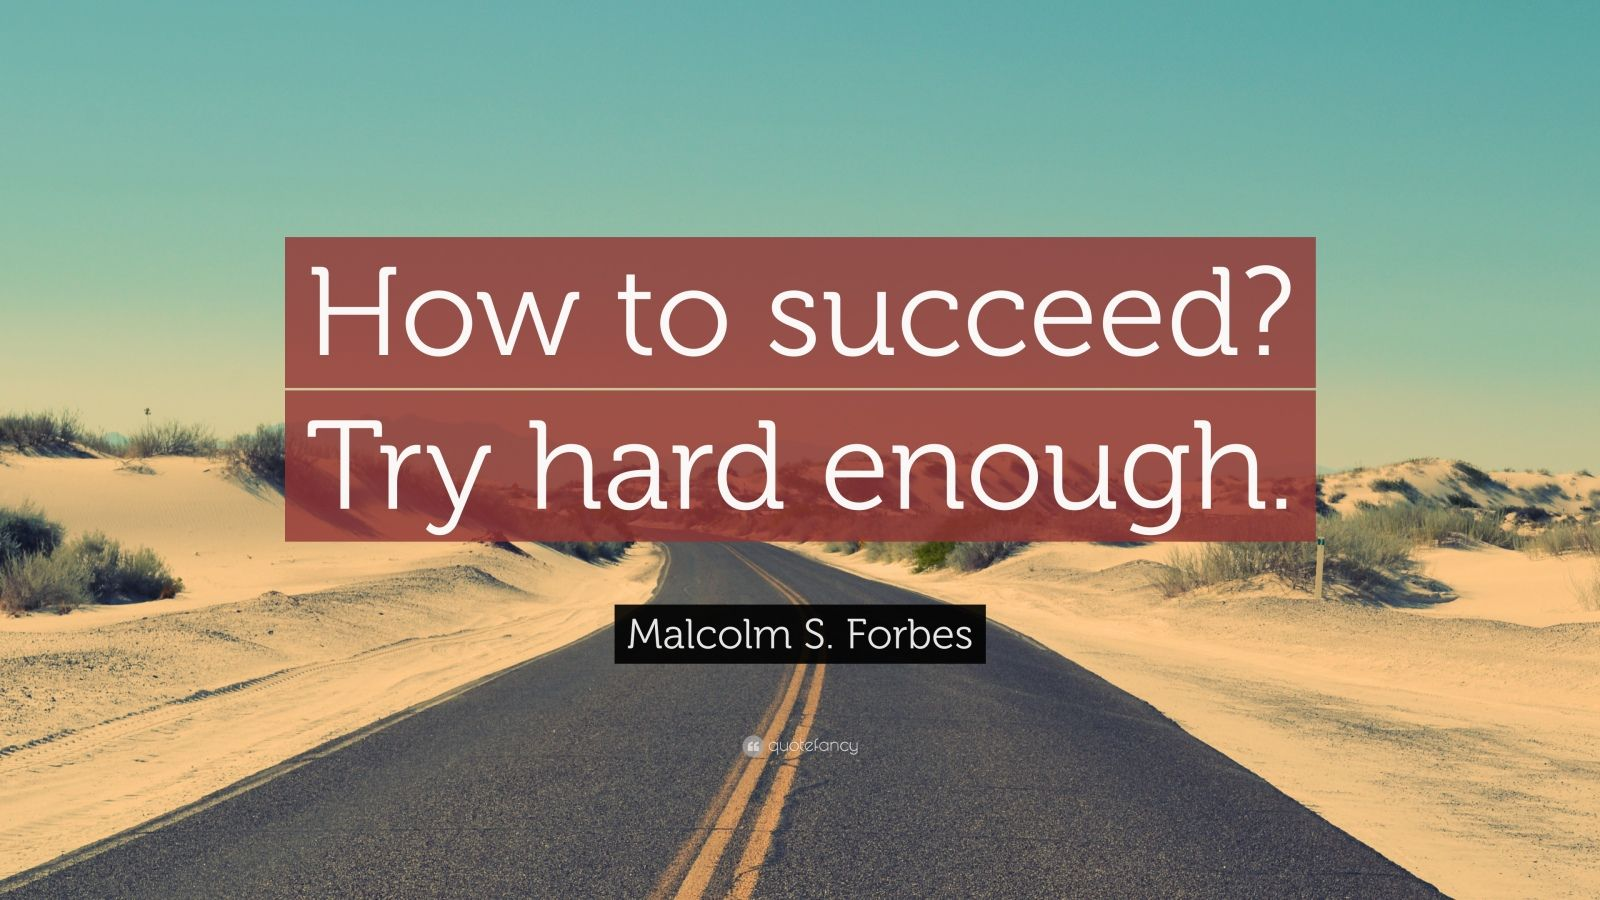 """Malcolm S. Forbes Quote: """"How to succeed? Try hard enough."""""""